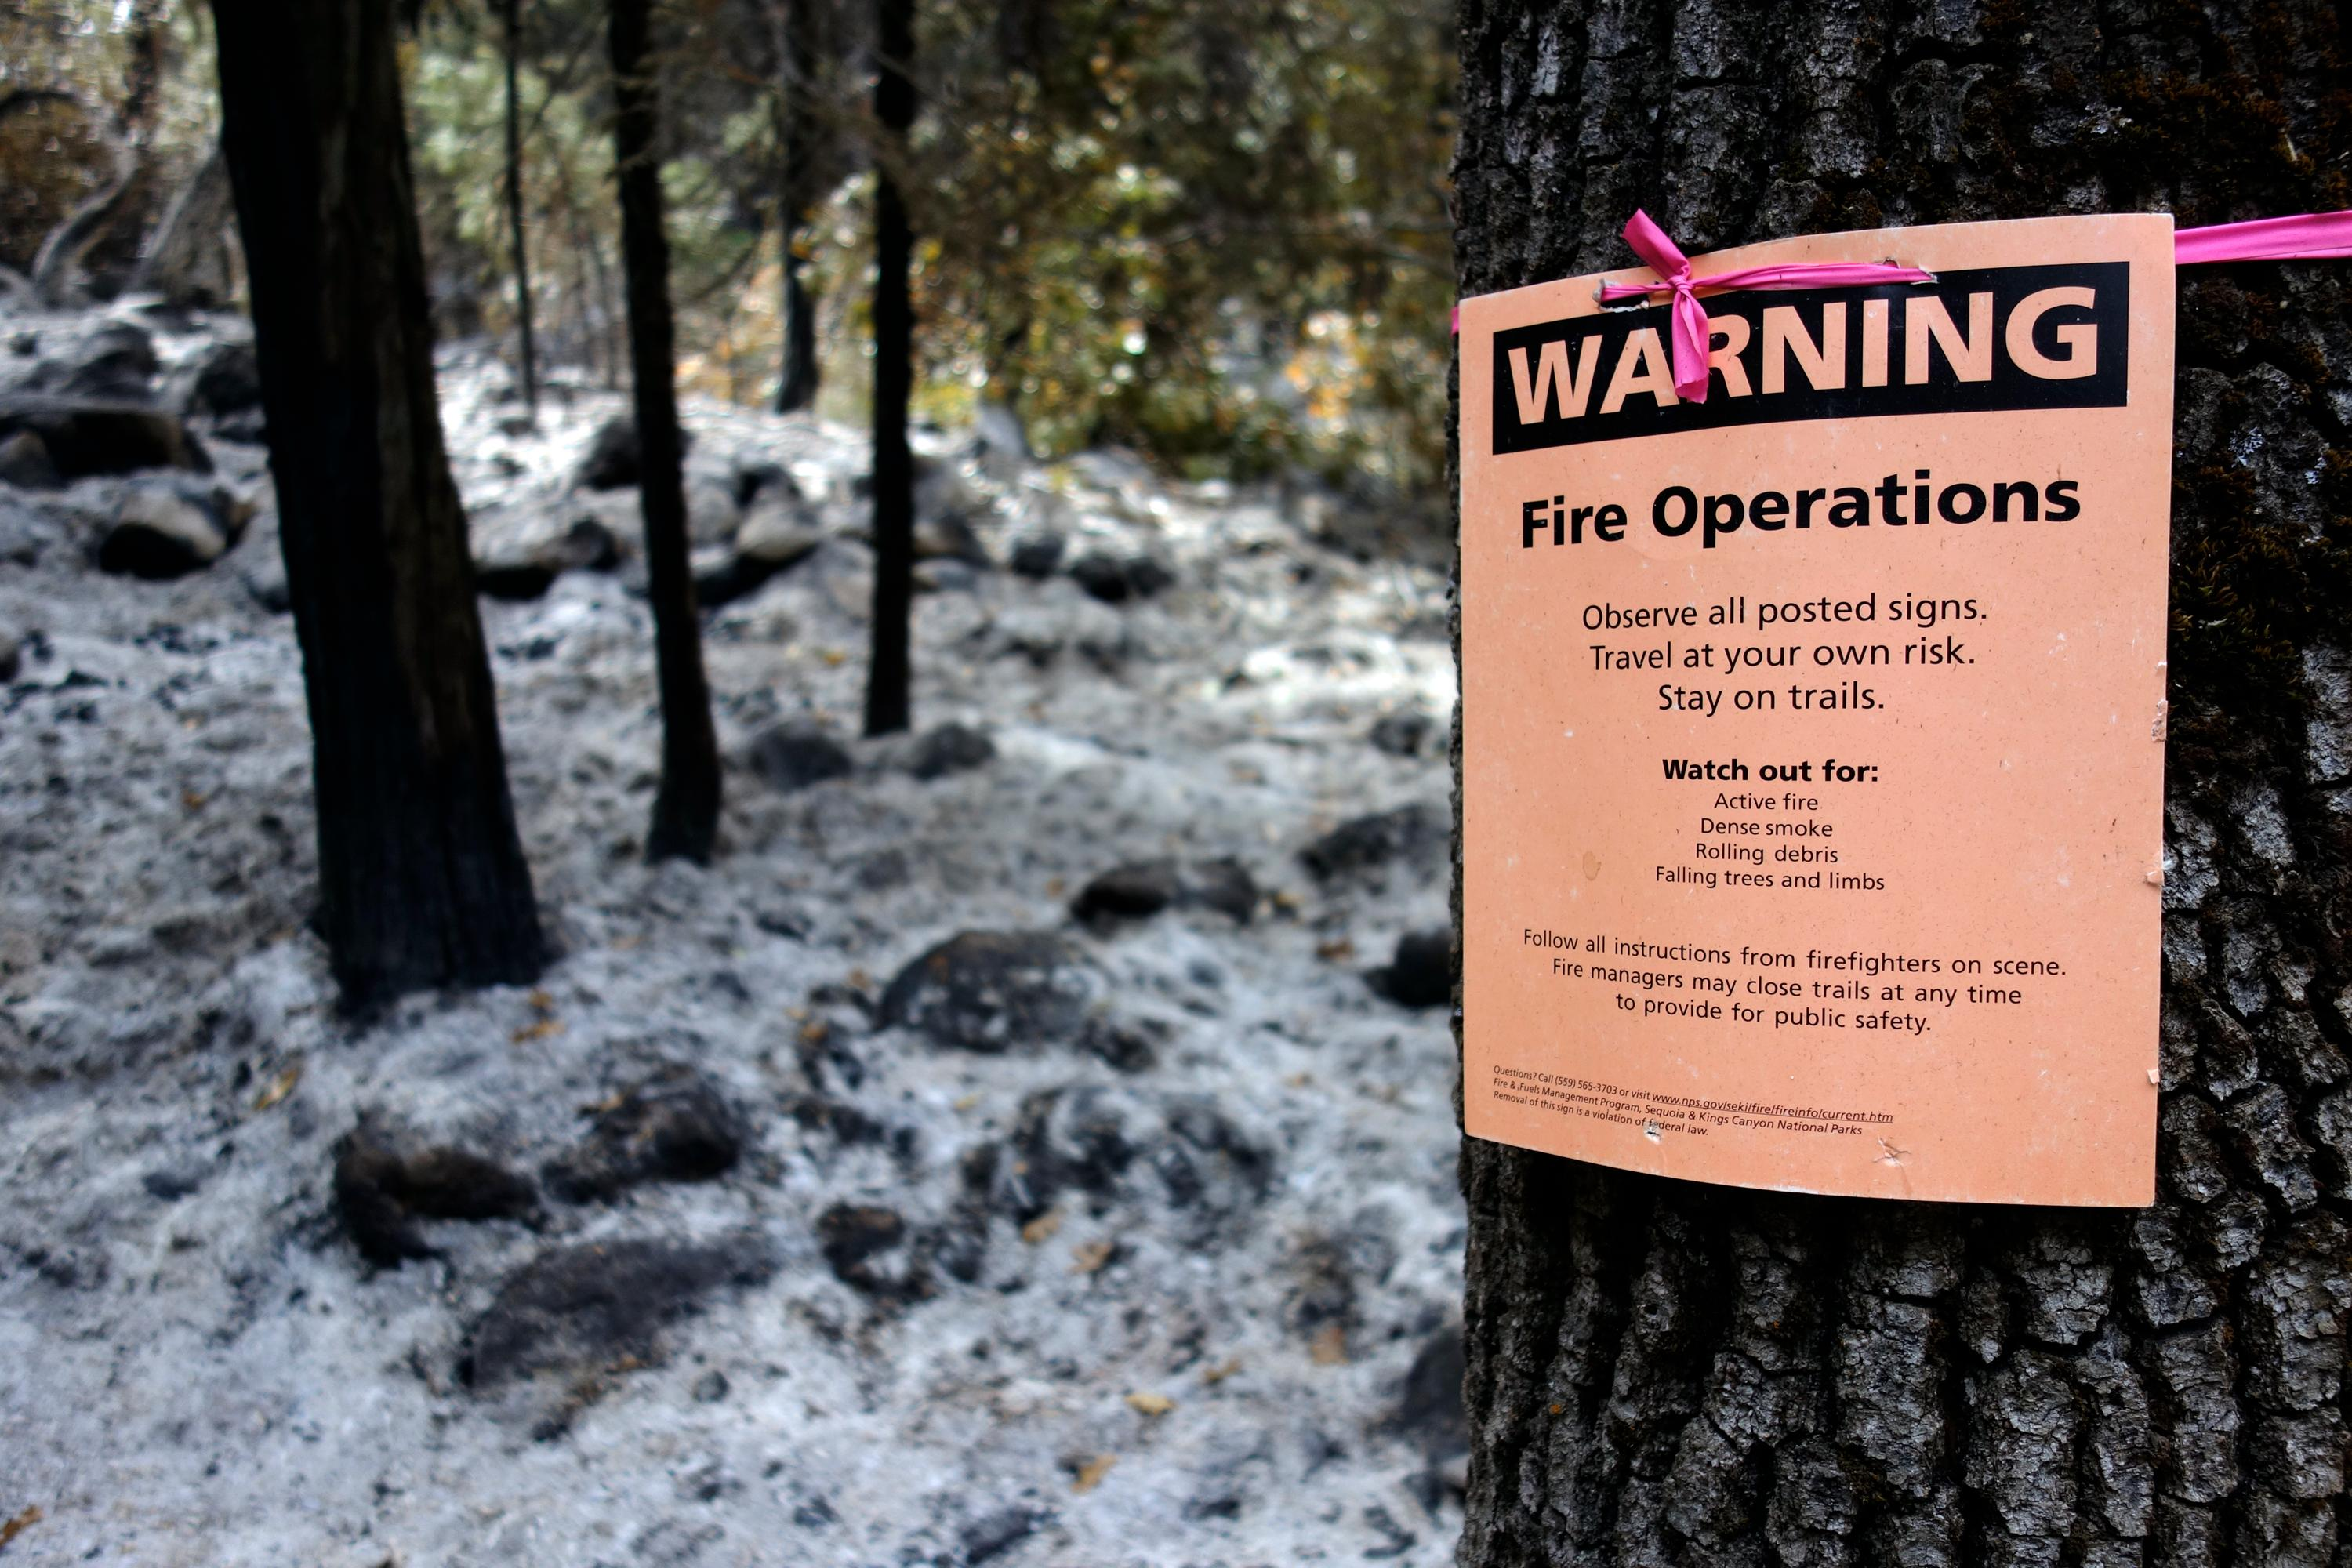 "This Oct. 30, 2017 photo shows a notice warning visitors of controlled-fire operations in Kings Canyon National Park, Calif.  California's seemingly endless cycle of wildfires is helping drive plans to do more ""controlled burns"" that thin forests choked with dead trees and withered underbrush that if left unchecked can feed monster blazes that force entire communities to flee, destroy homes and take lives. The goal for 2018 is to burn at least 20,000 acres and to clear another 20,000 by crews using chain saws, bulldozers and other machinery. (AP Photo/Brian Melley)"